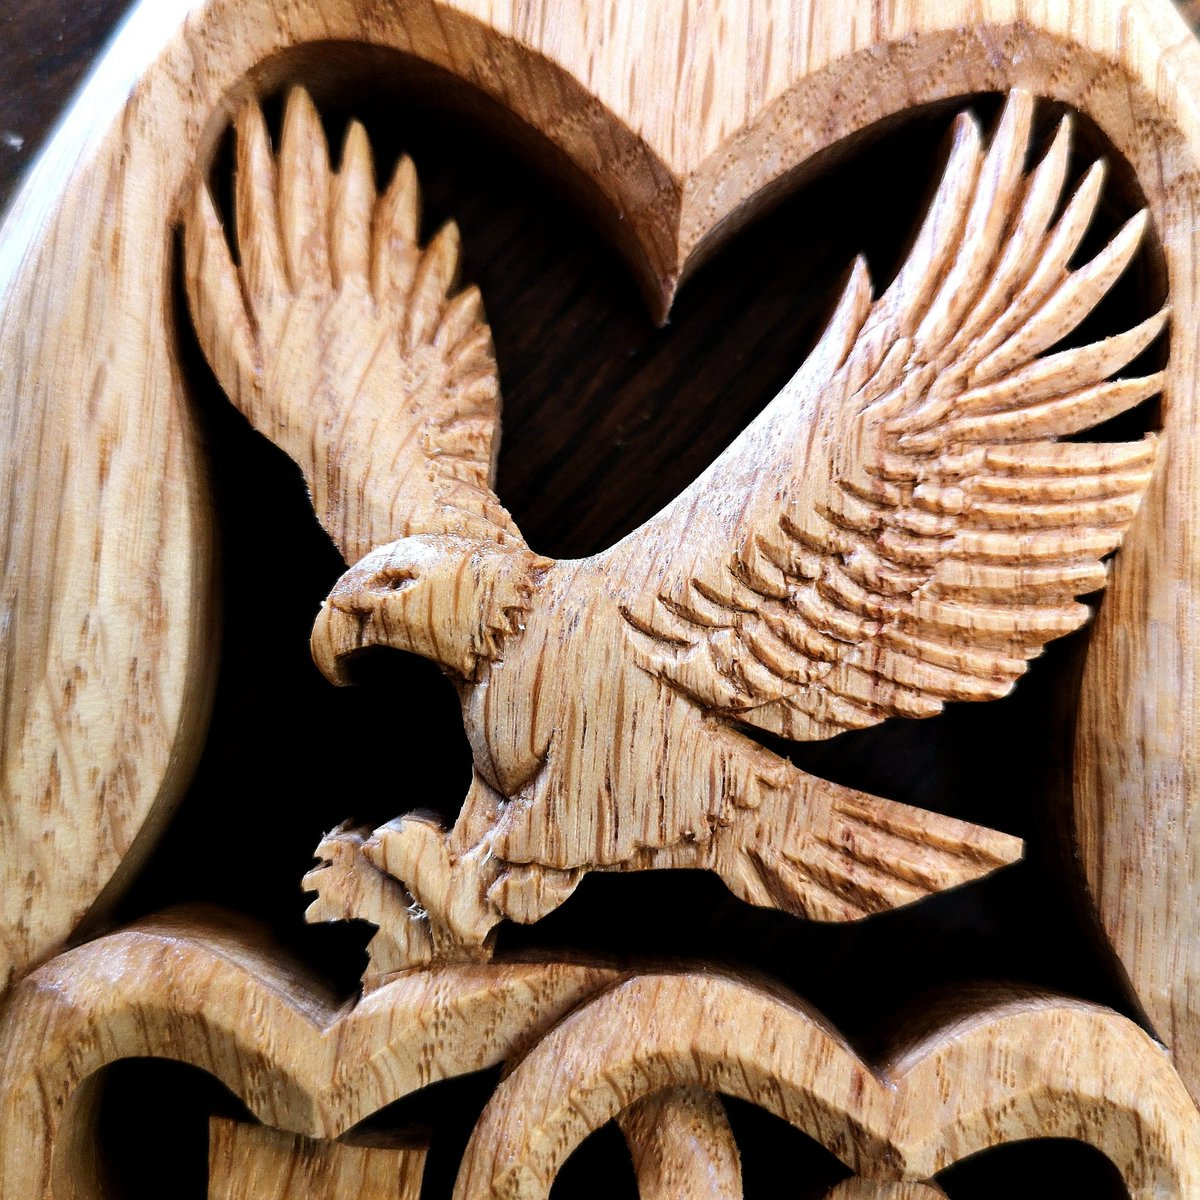 Feature #carving upon a bespoke #lovespoon  https://t.co/pzixzuA3of  #americaneagle #woodcarving #eagleinwood #eaglecarving #birdsinwood #birdcarving #nature #lovenature #birds #america #eagle https://t.co/mlgpe10xHR